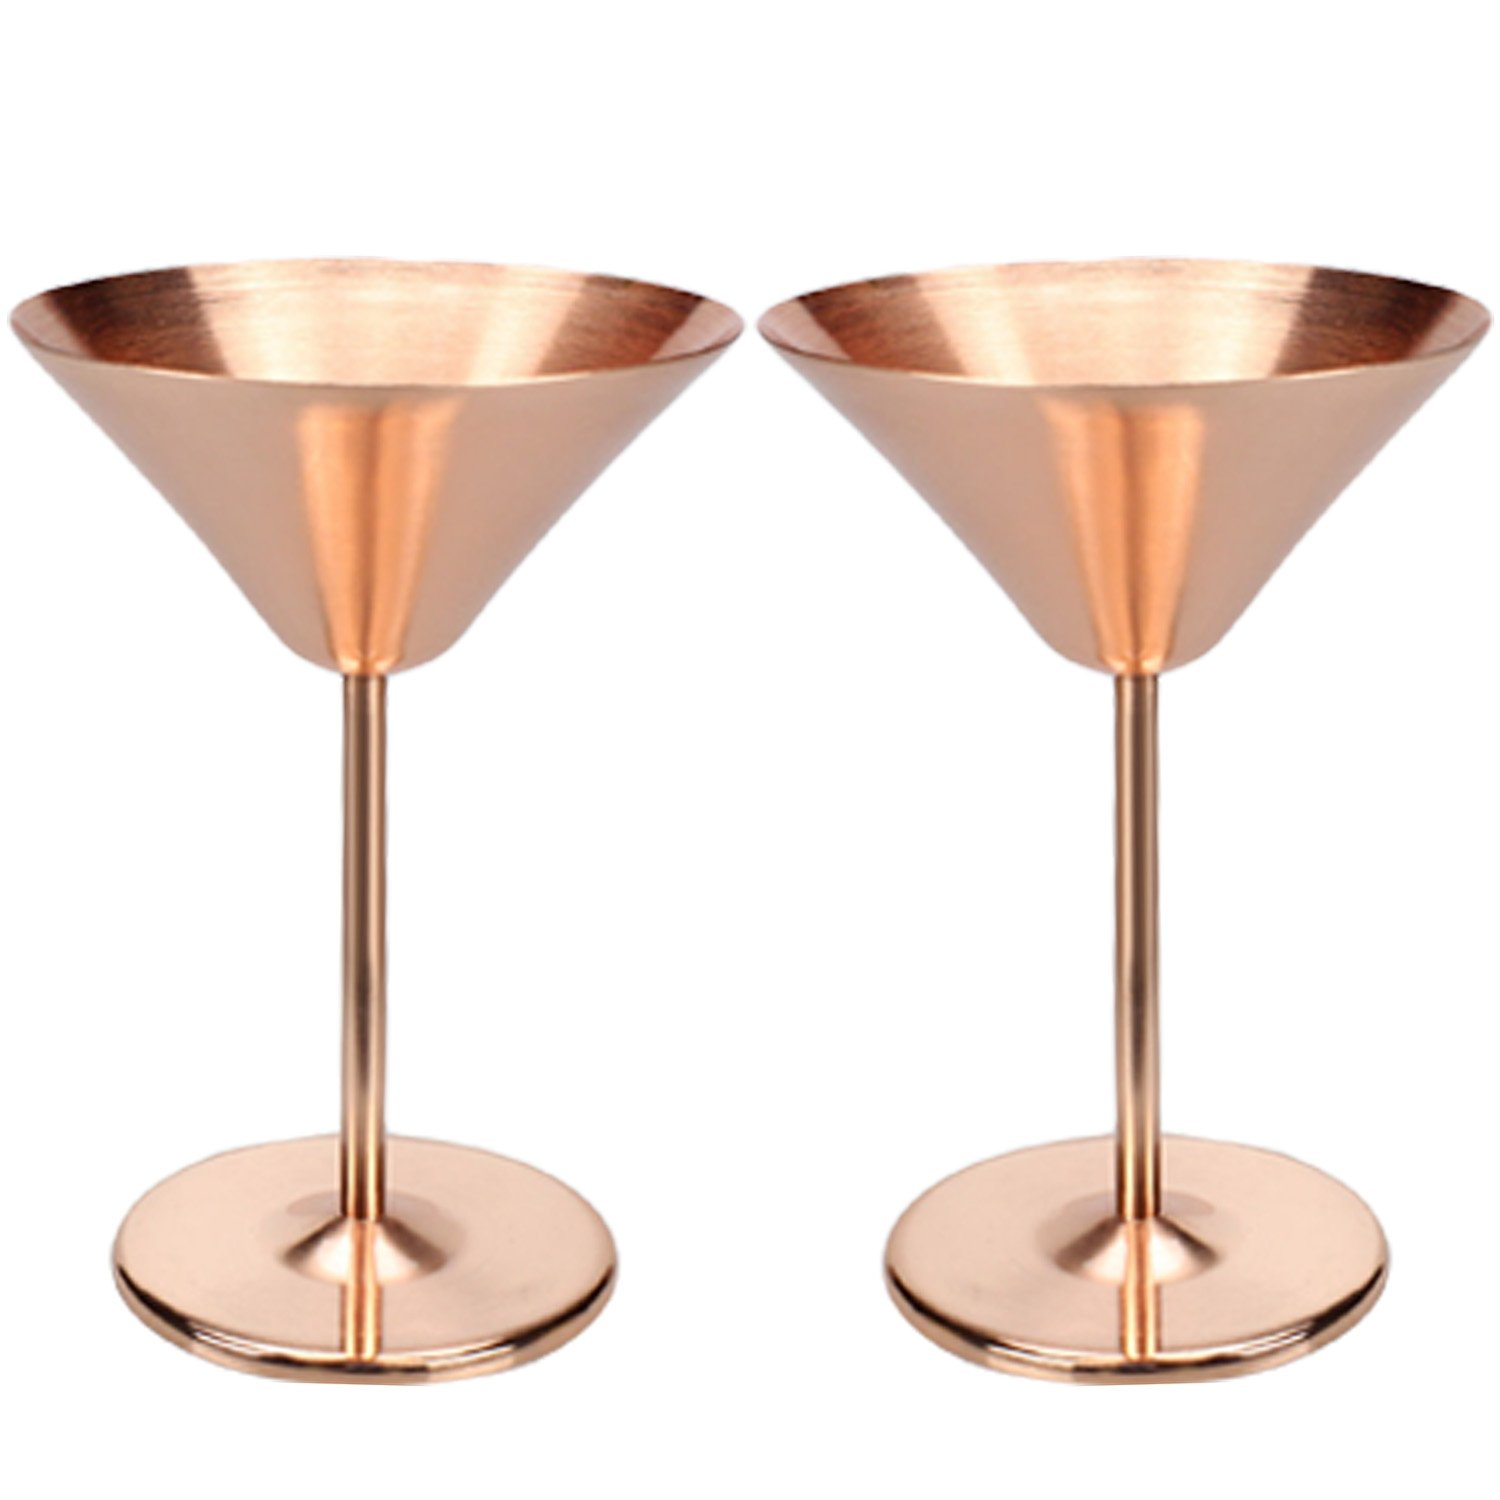 2 PCS Luxurious Stainless Steel Martini Glasses Copper Plated Cocktail Champagne Goblet Artisanal Barware 200ML Capacity